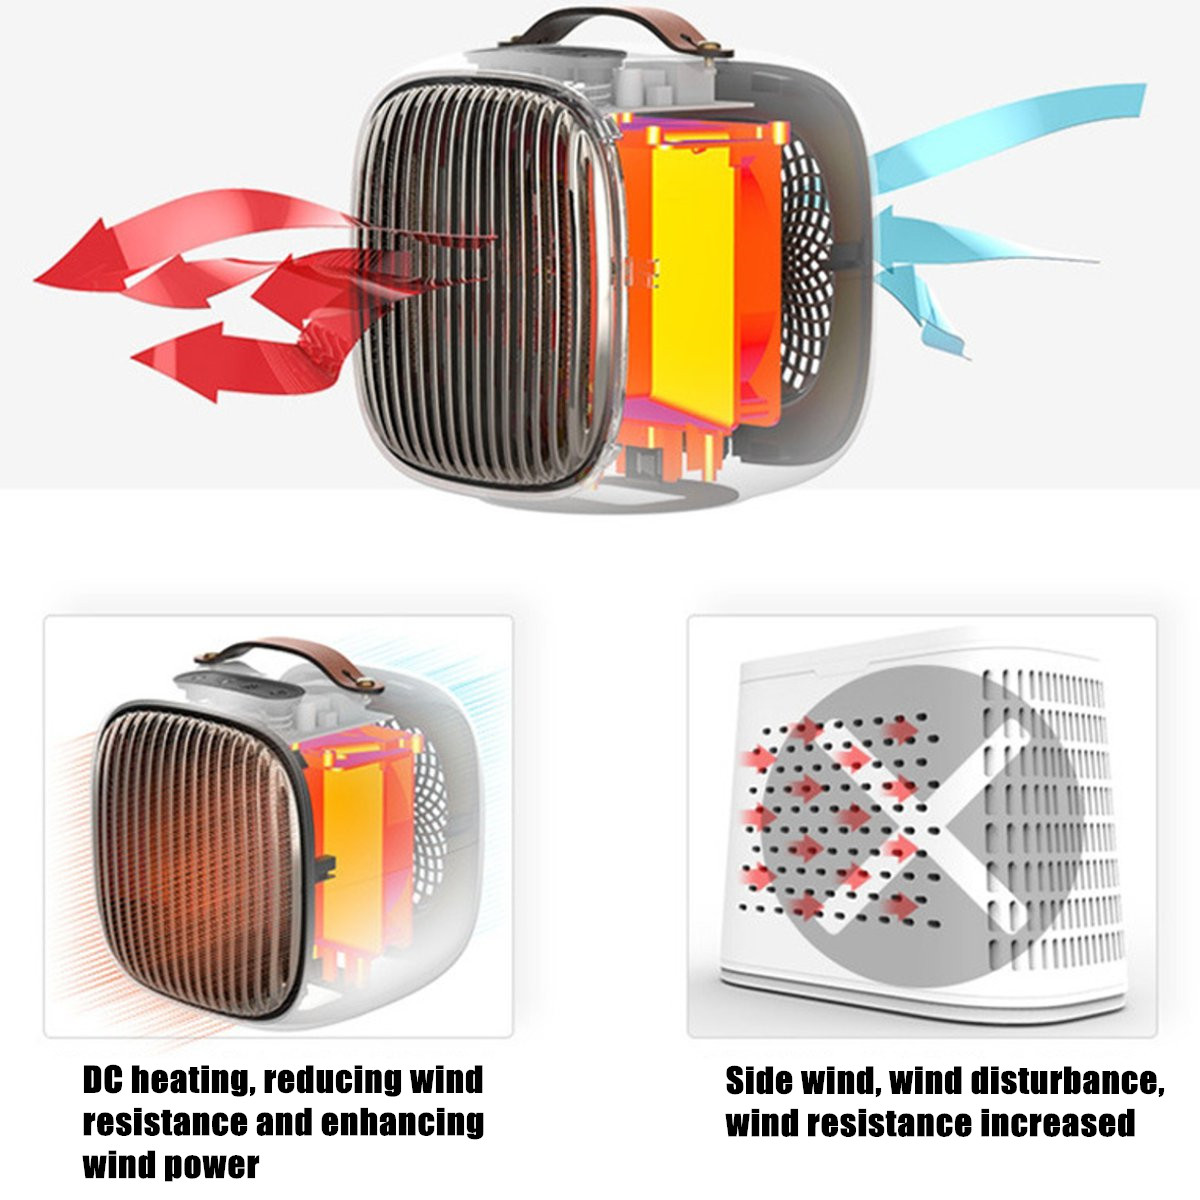 220V 1000W Portable Air Heater Fan Warmer Black/White/Red/Orange Overheat Protection